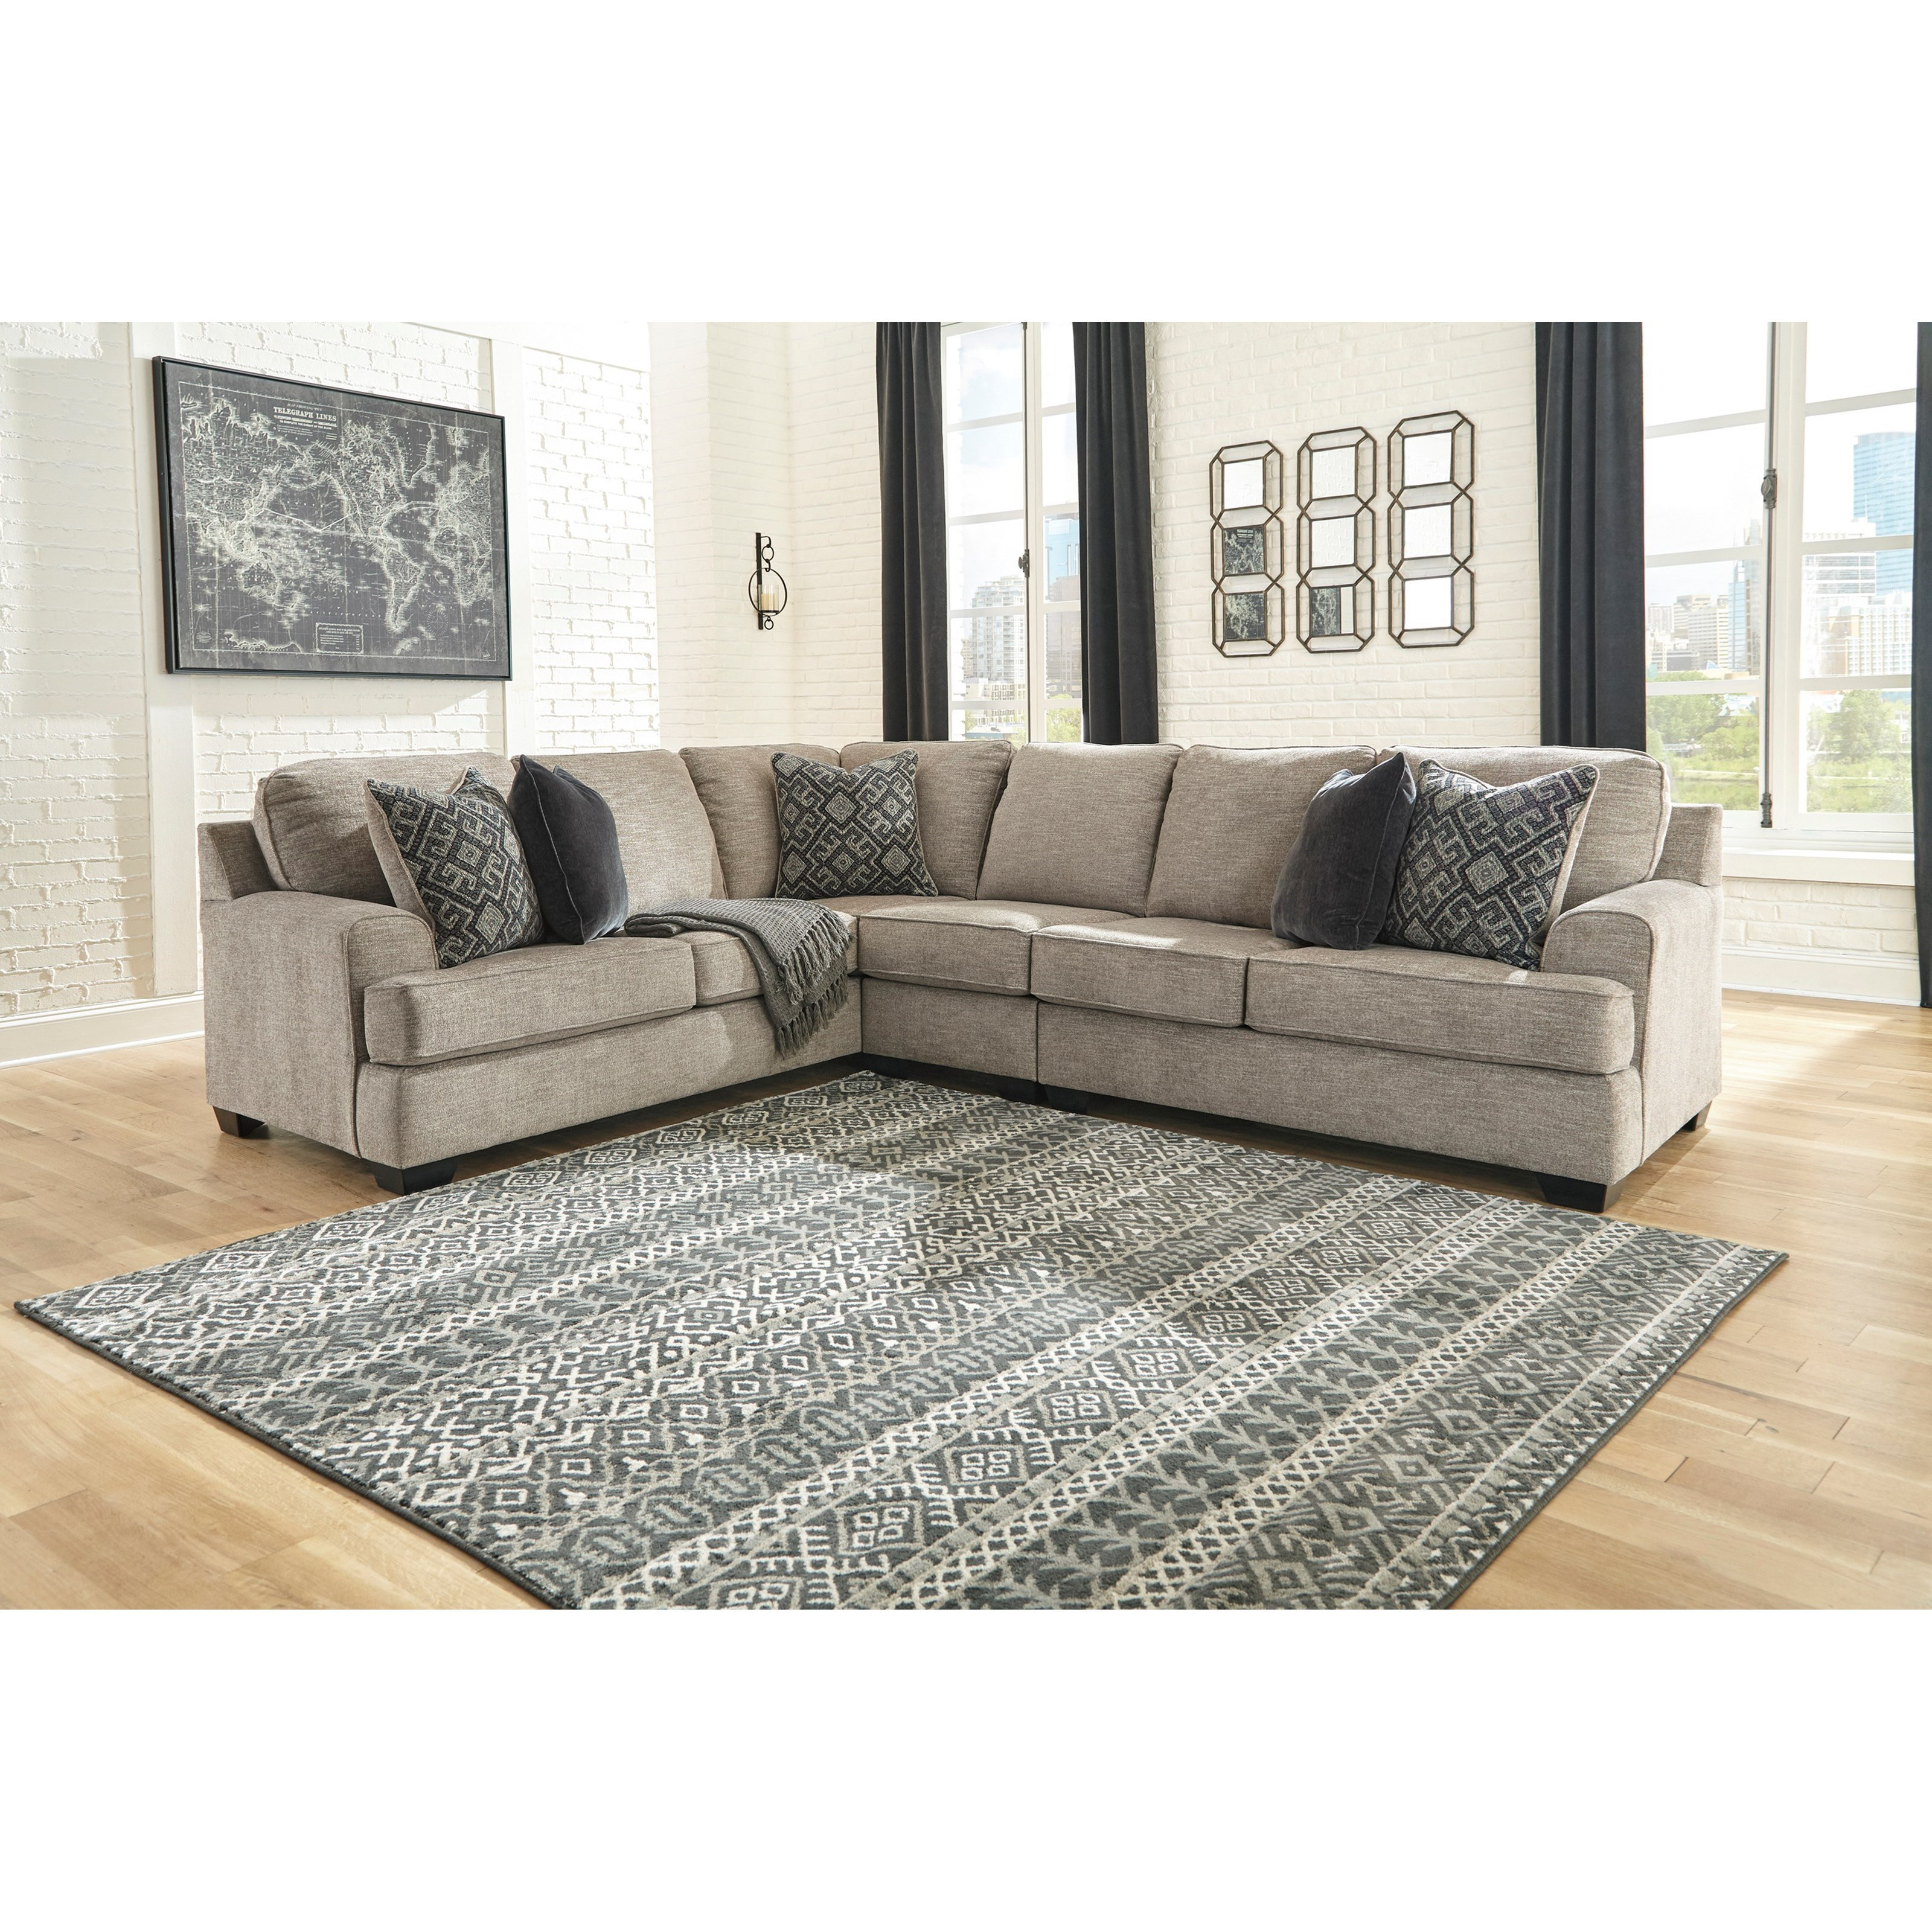 3-Piece Sectional with Track Arms